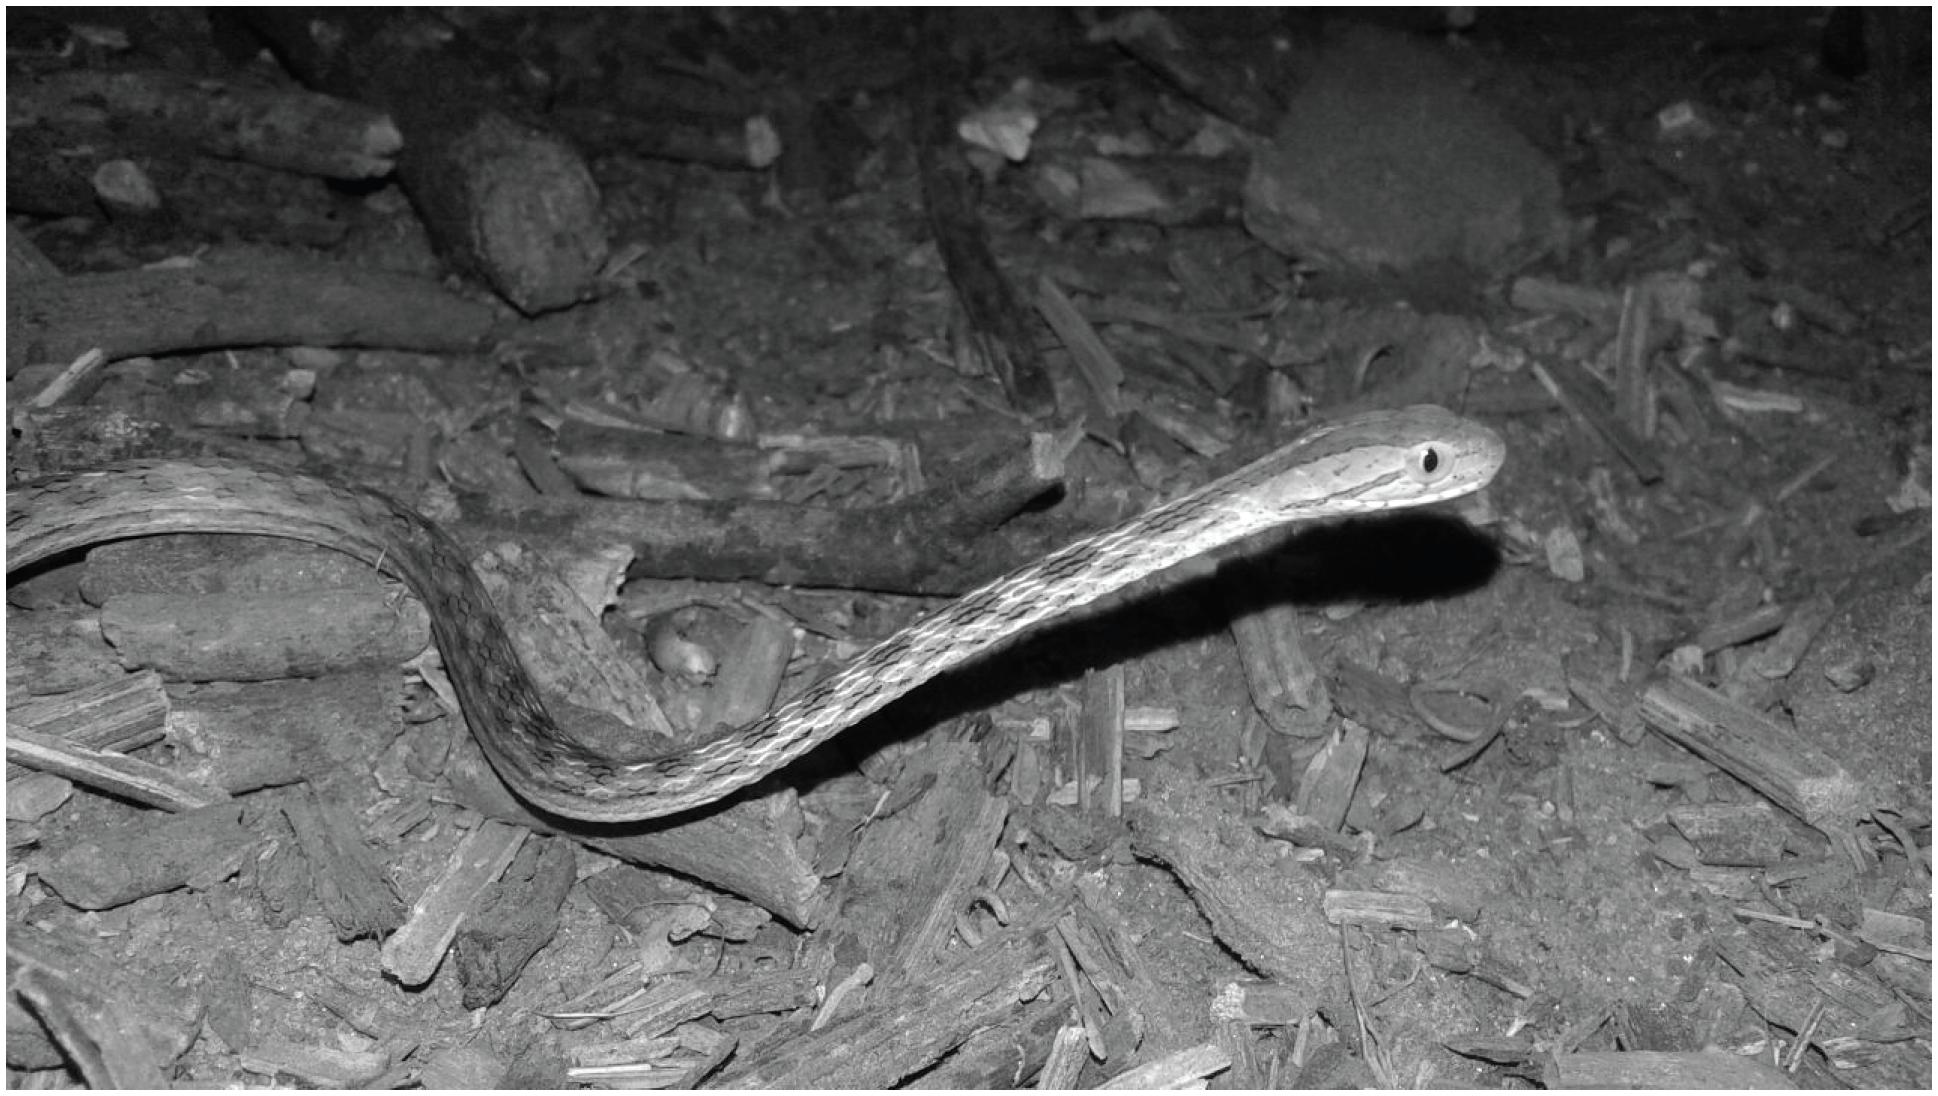 The snake Thamnodynastes pallidus responsible for the accident